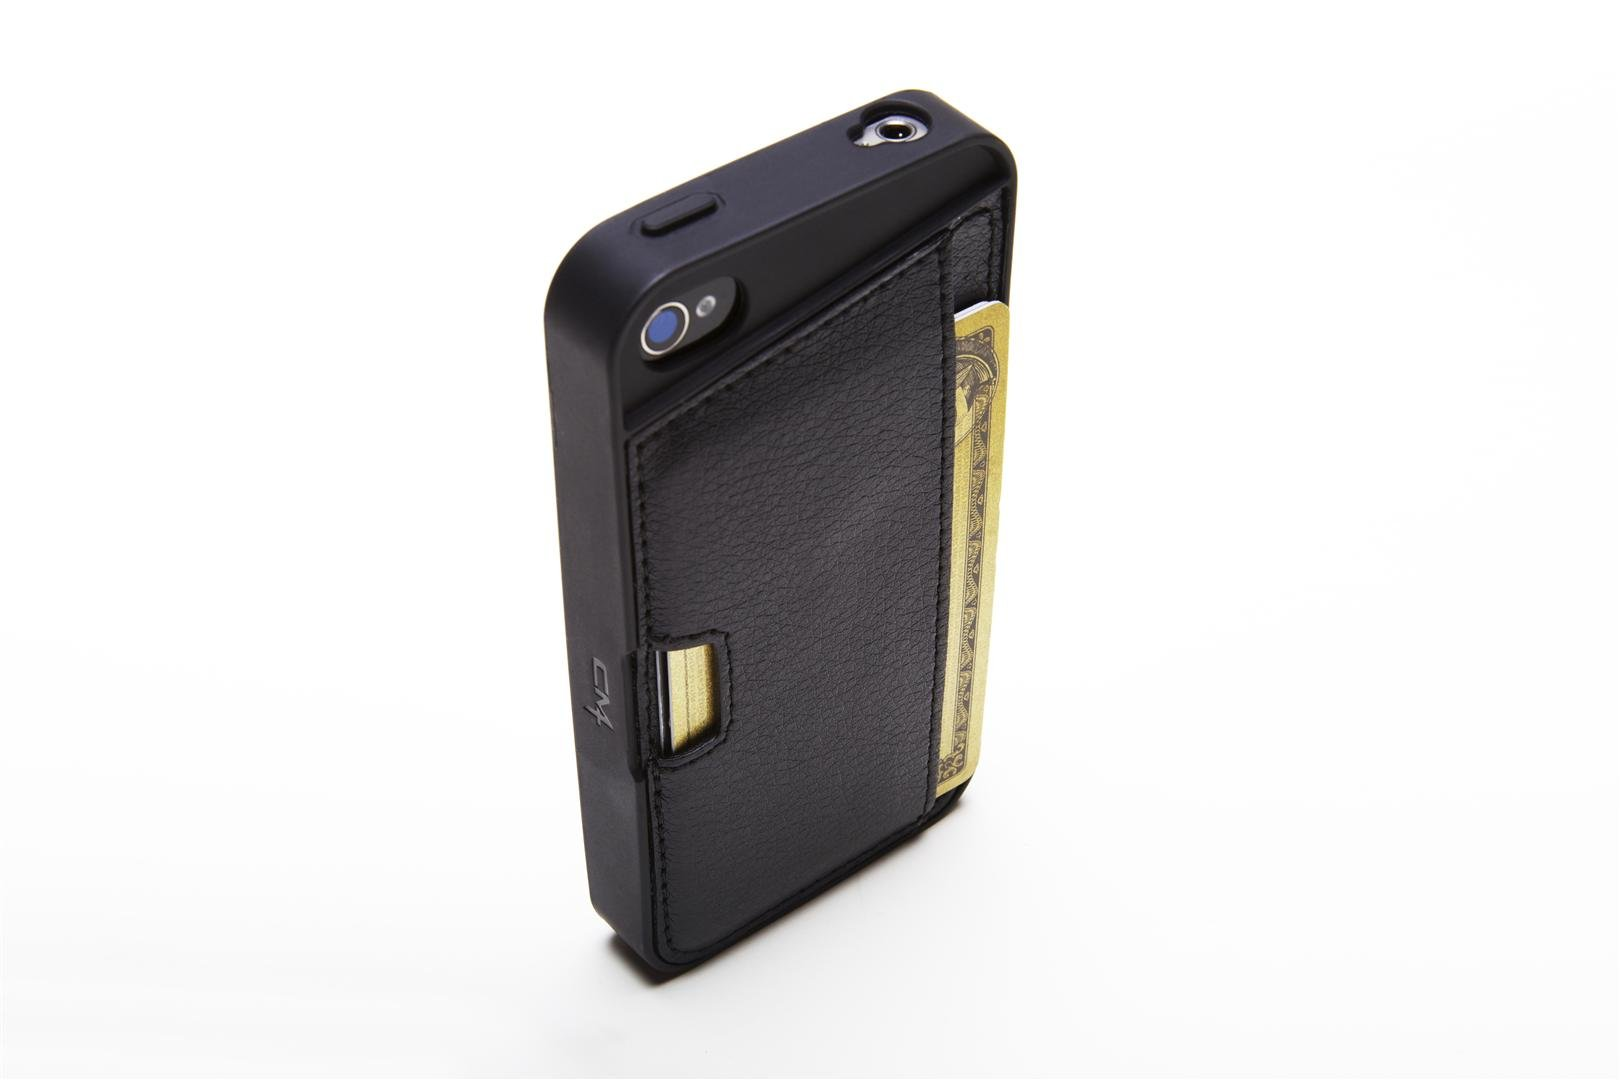 Silk iPhone 4/4S Wallet Case - Q CARD CASE [Slim Protective CM4 Cover] - Black Onyx by Silk (Image #4)